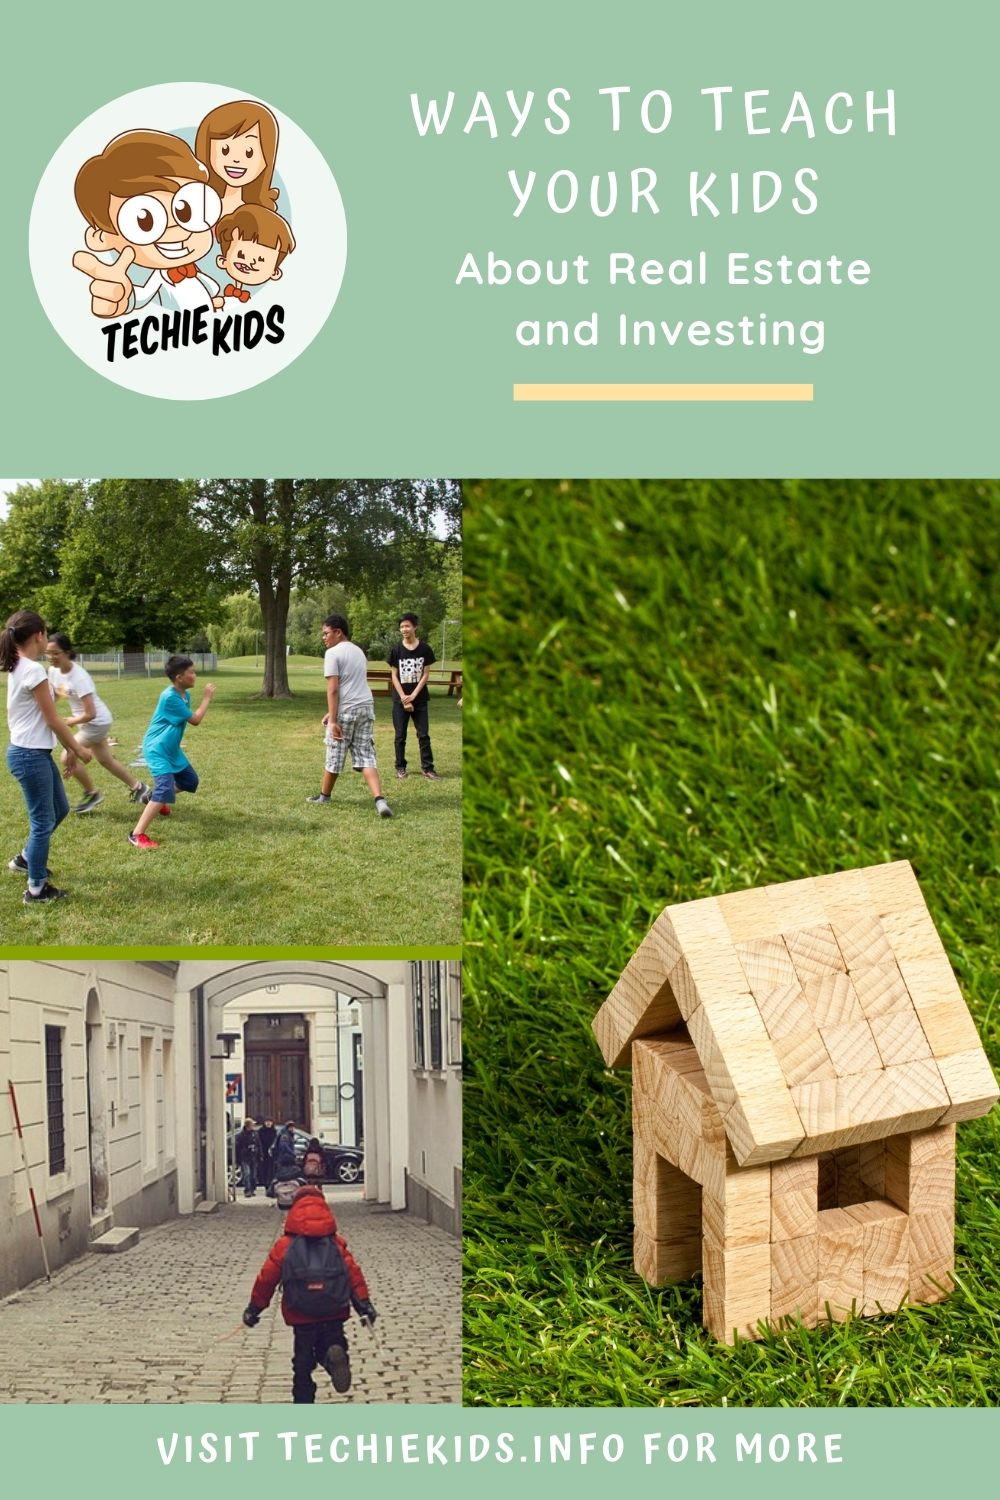 Ways to Teach Your Kids the Value of Real Estate and Investing